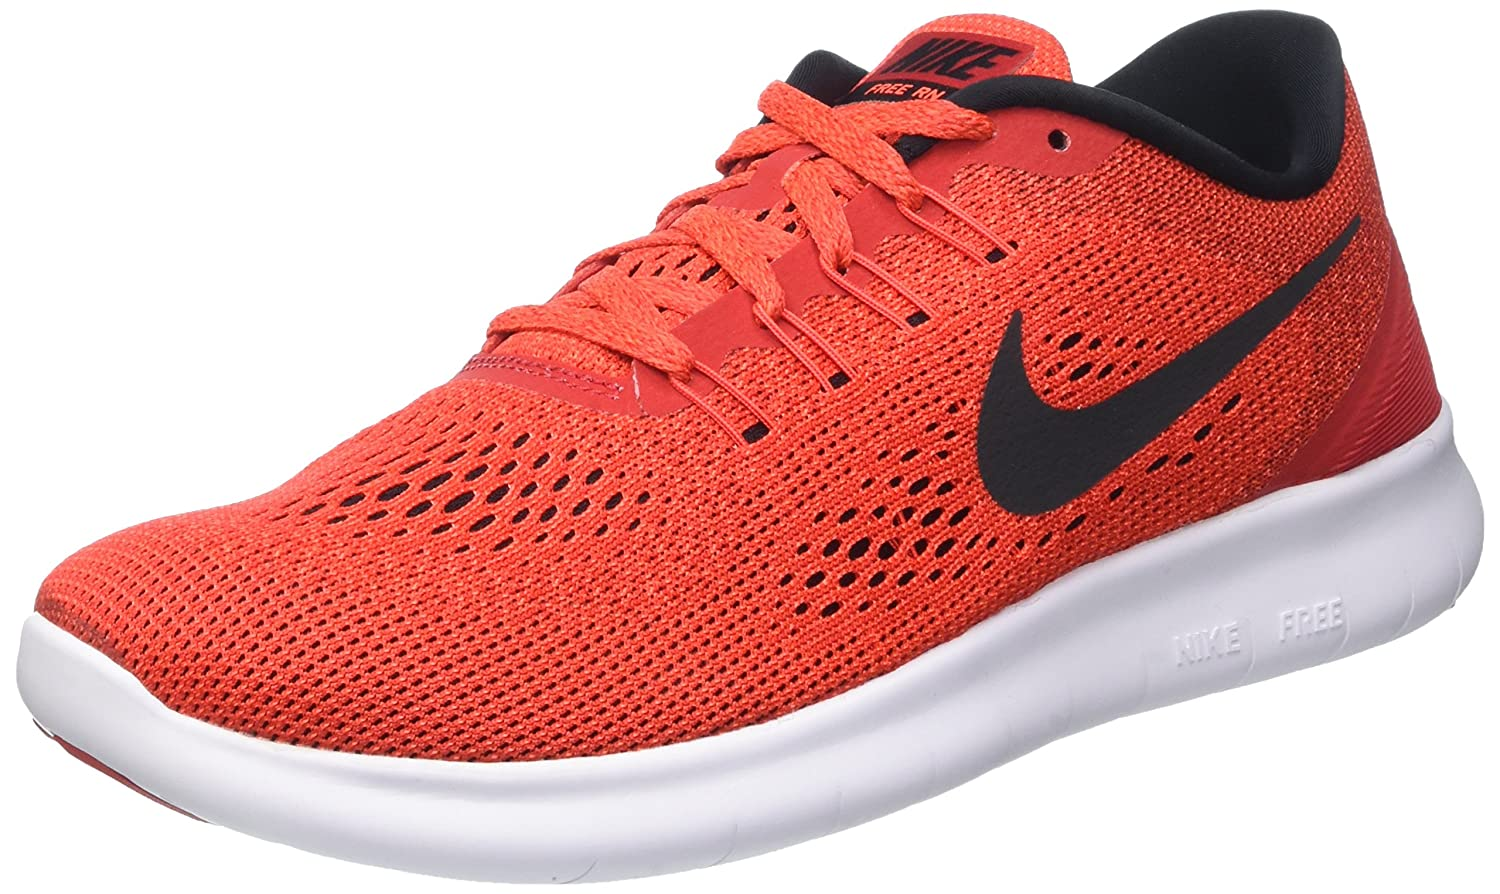 NIKE Men's Free RN Medium Running Shoe B00JSQQBPA 8.5 Medium RN (D, M)|Total Crimson/Black/Gym Red/White 7aa1c3